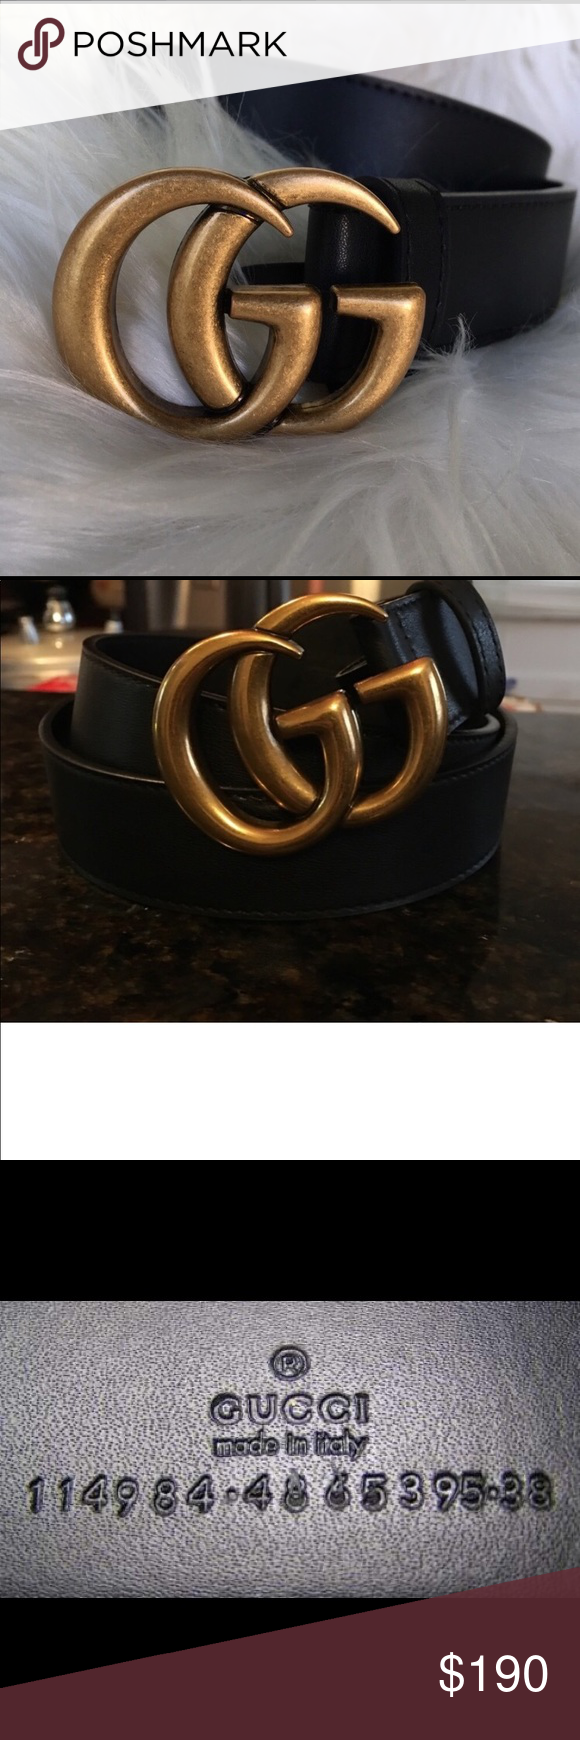 e32772ed2 Gucci Marmont belt! Brand new never worn! Authentic! Size 100 , big GG.  Before purchasing comment and let me know Gucci Accessories Belts